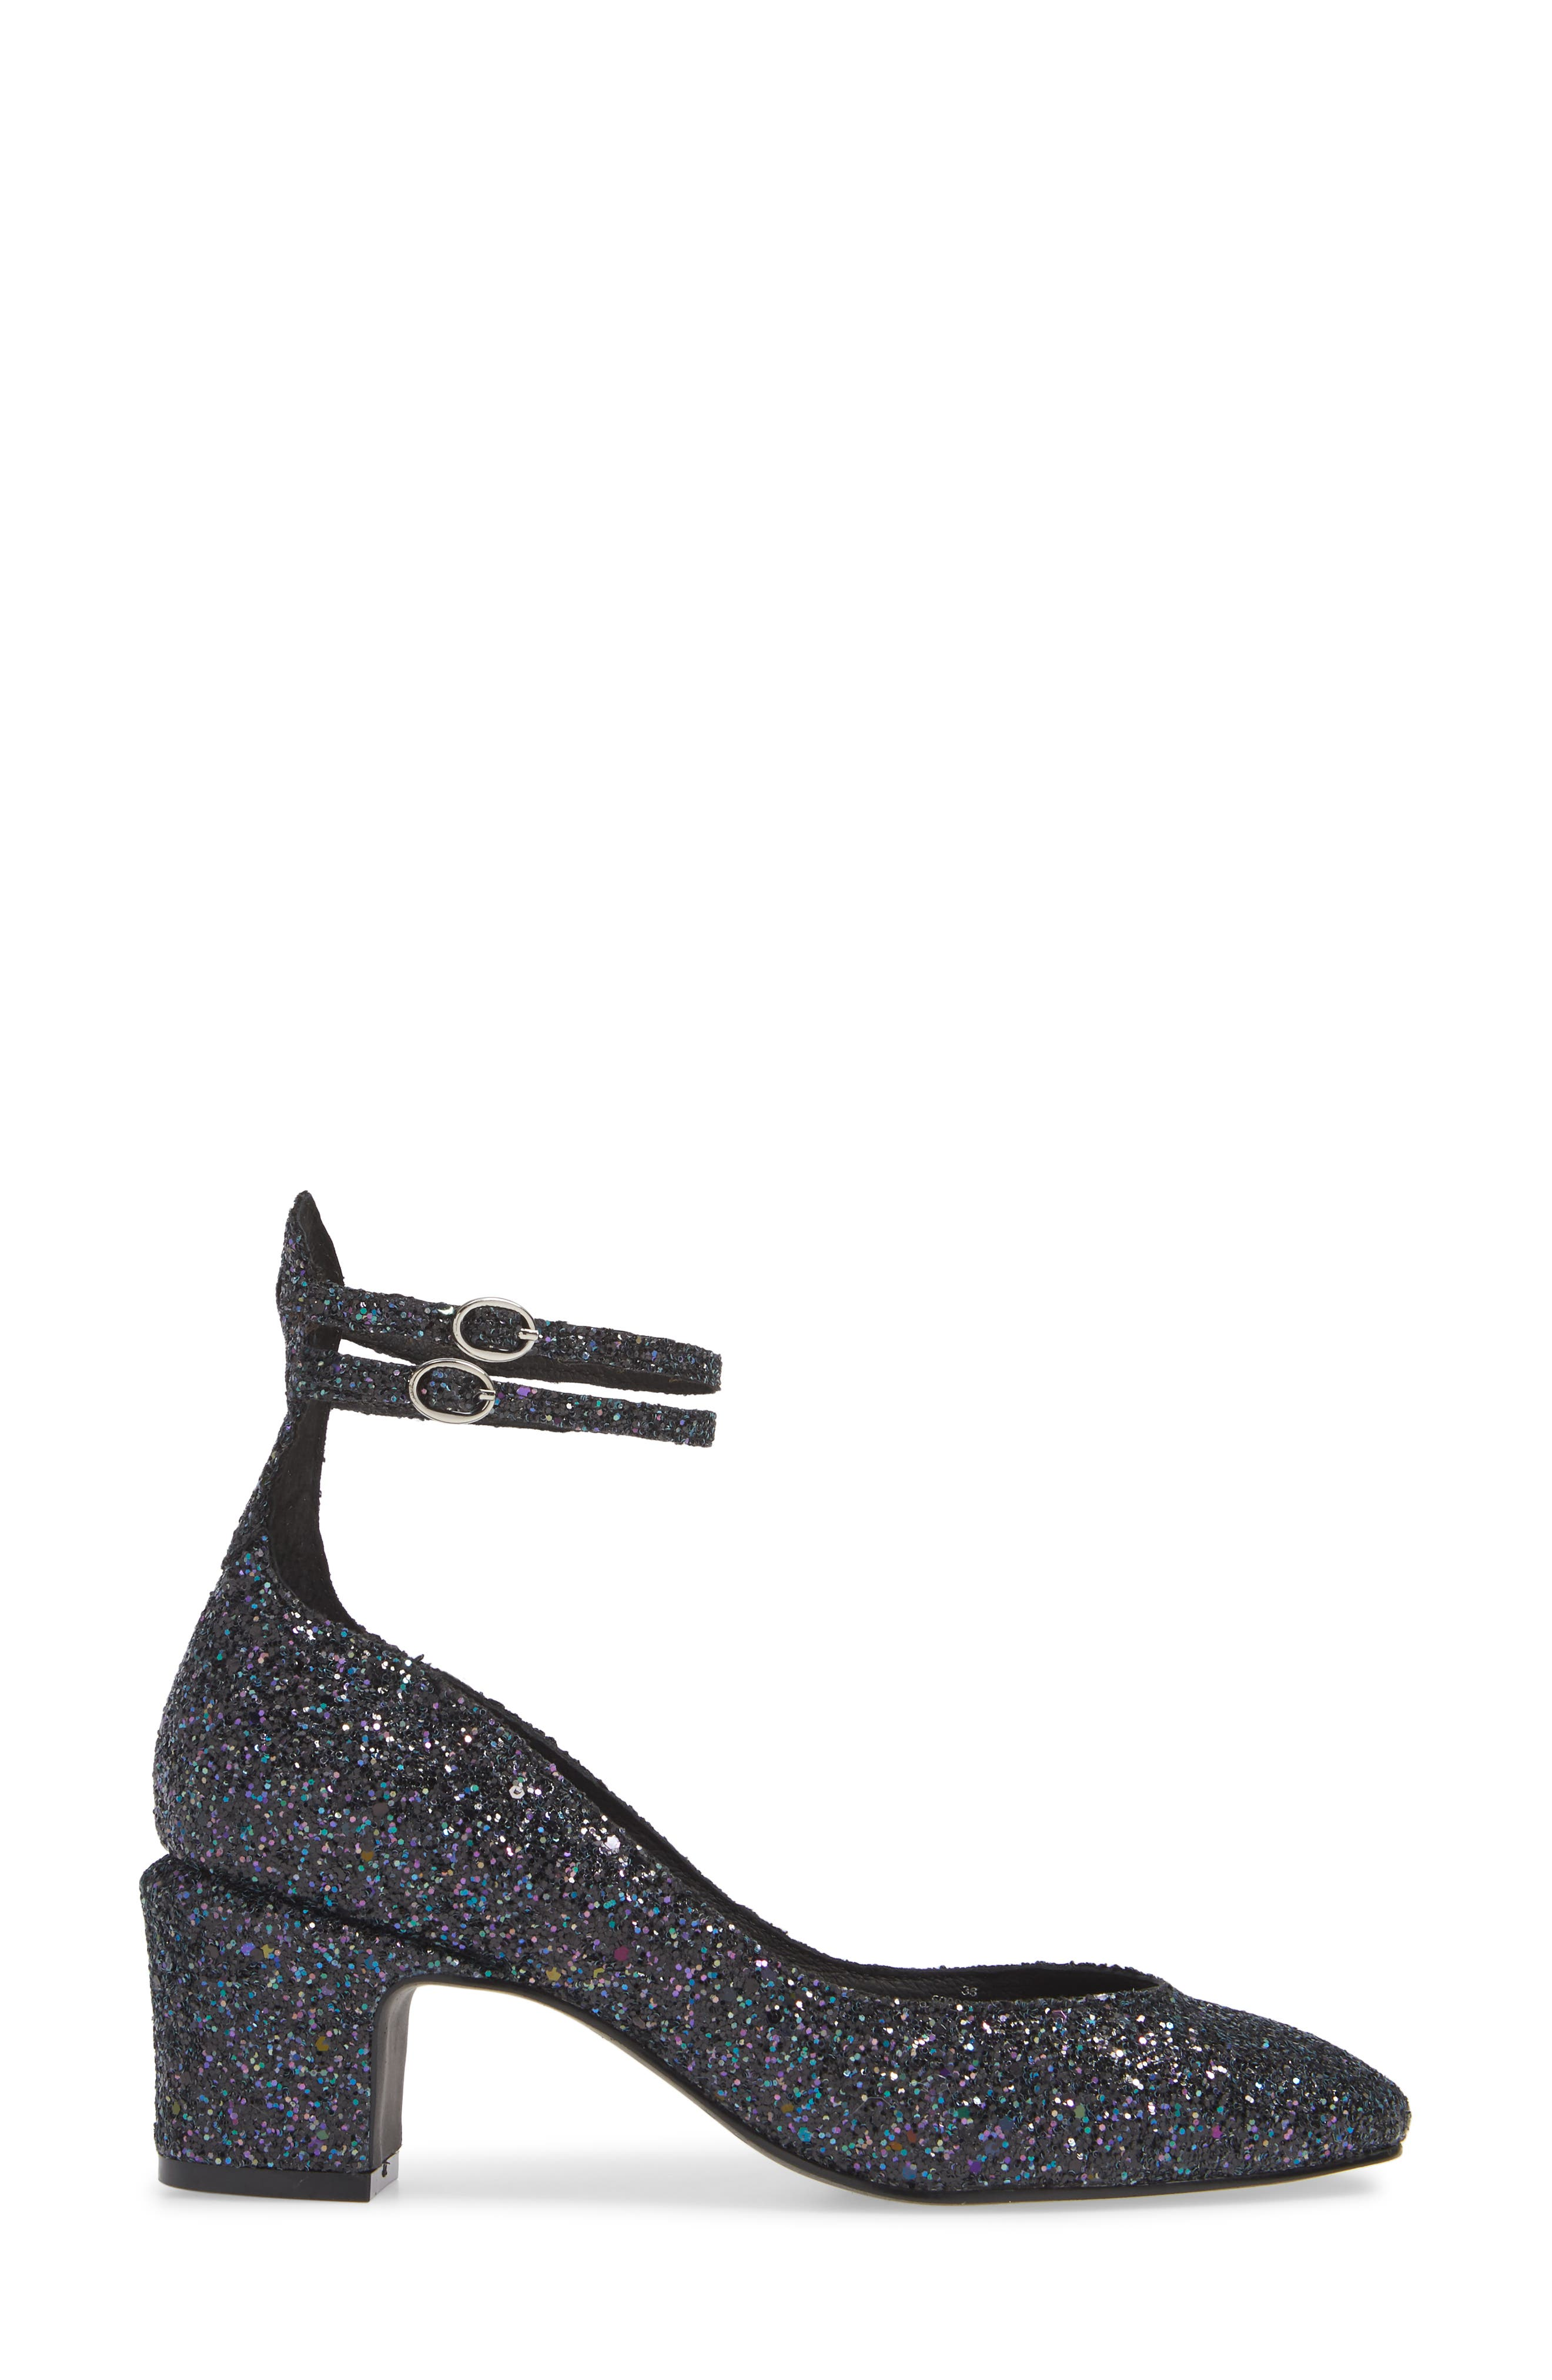 Lana Ankle Strap Pump,                             Alternate thumbnail 3, color,                             NAVY GLITTER PATENT LEATHER